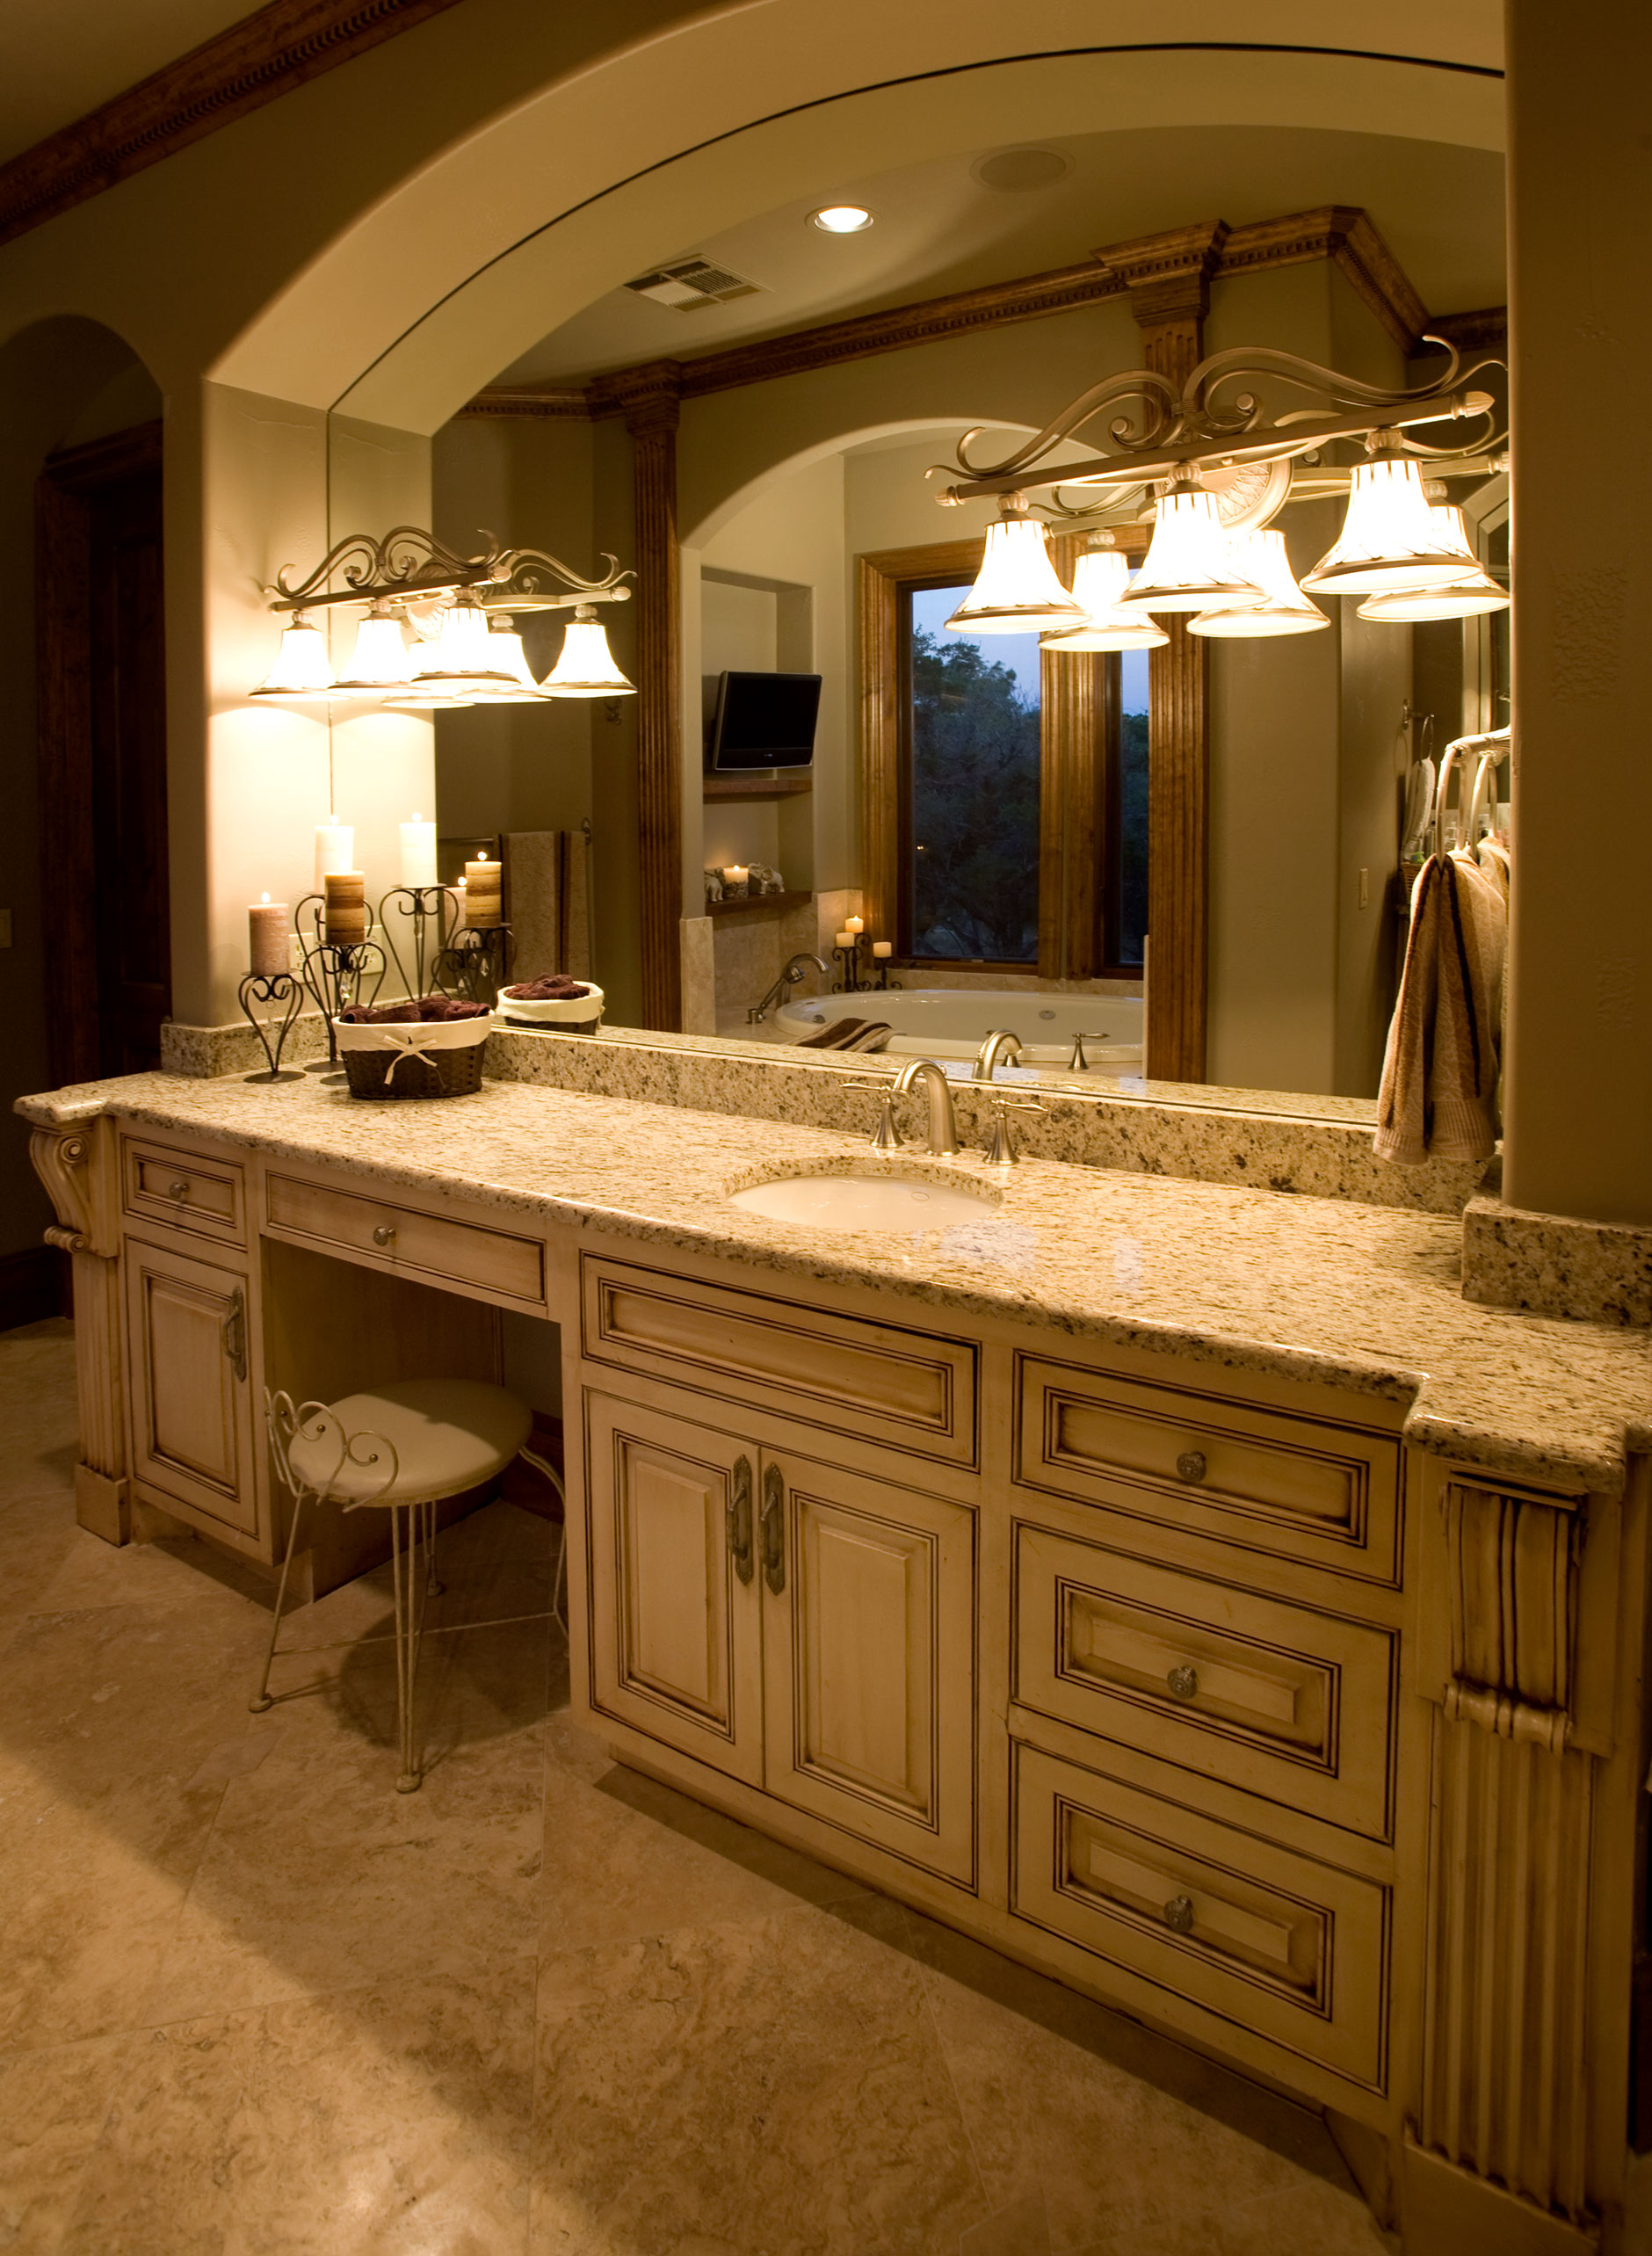 Bathroom cabinet 5 shown with M101, M4, RP1 cabinet doors